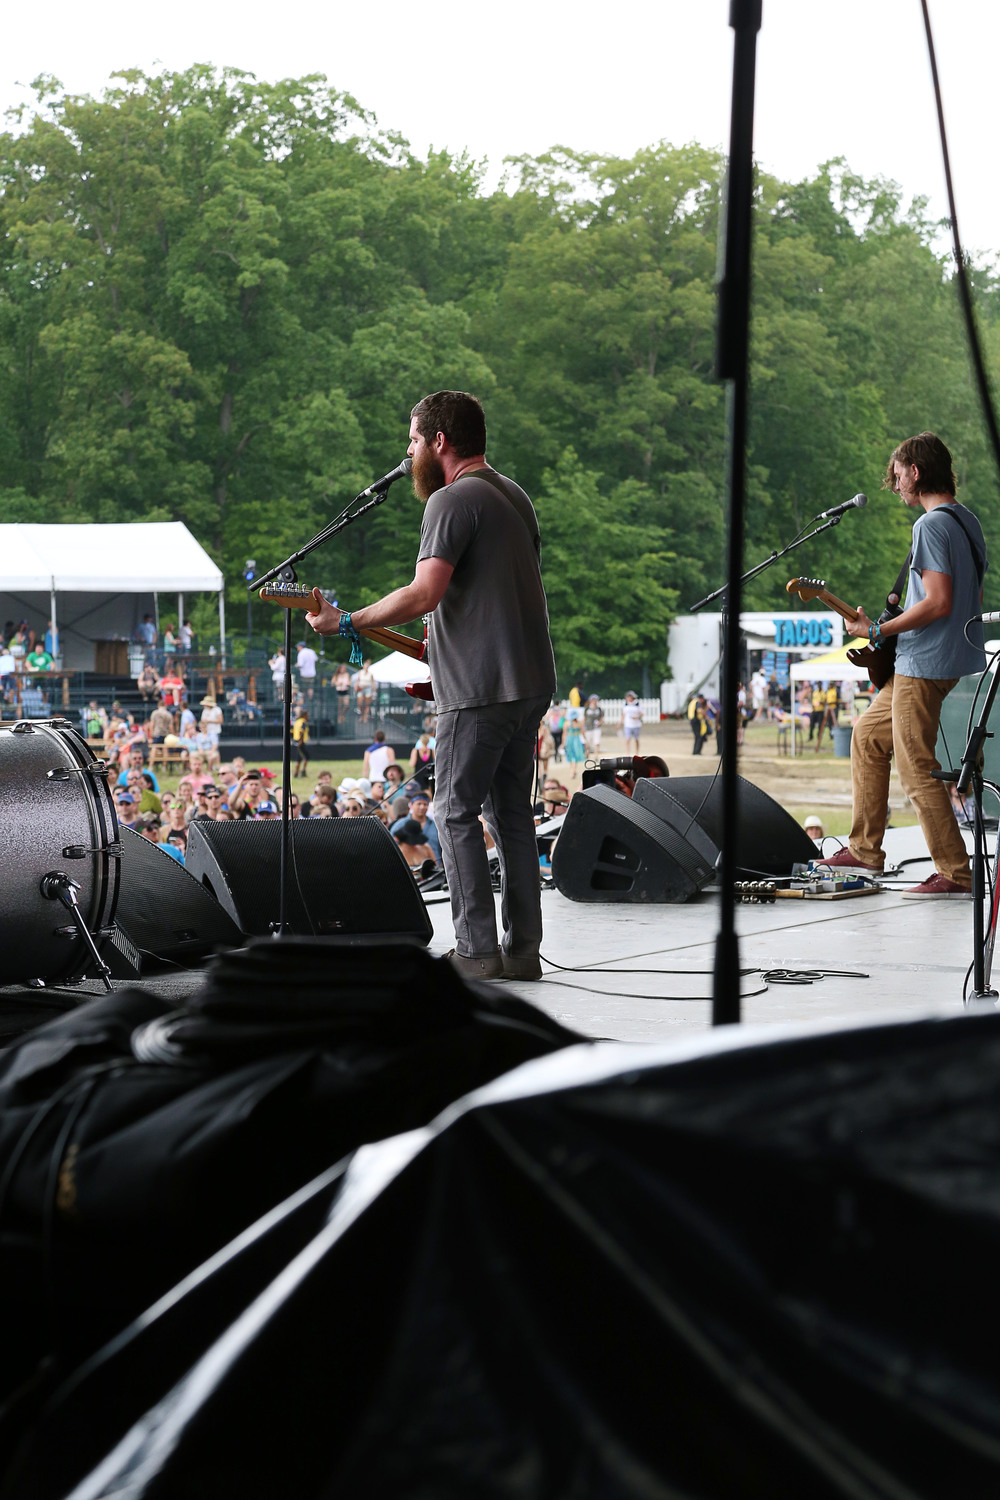 Manchester Orchestra -  @manchesterorchestra   Firefly Music Festival - 6.19.15  Dover, Delaware